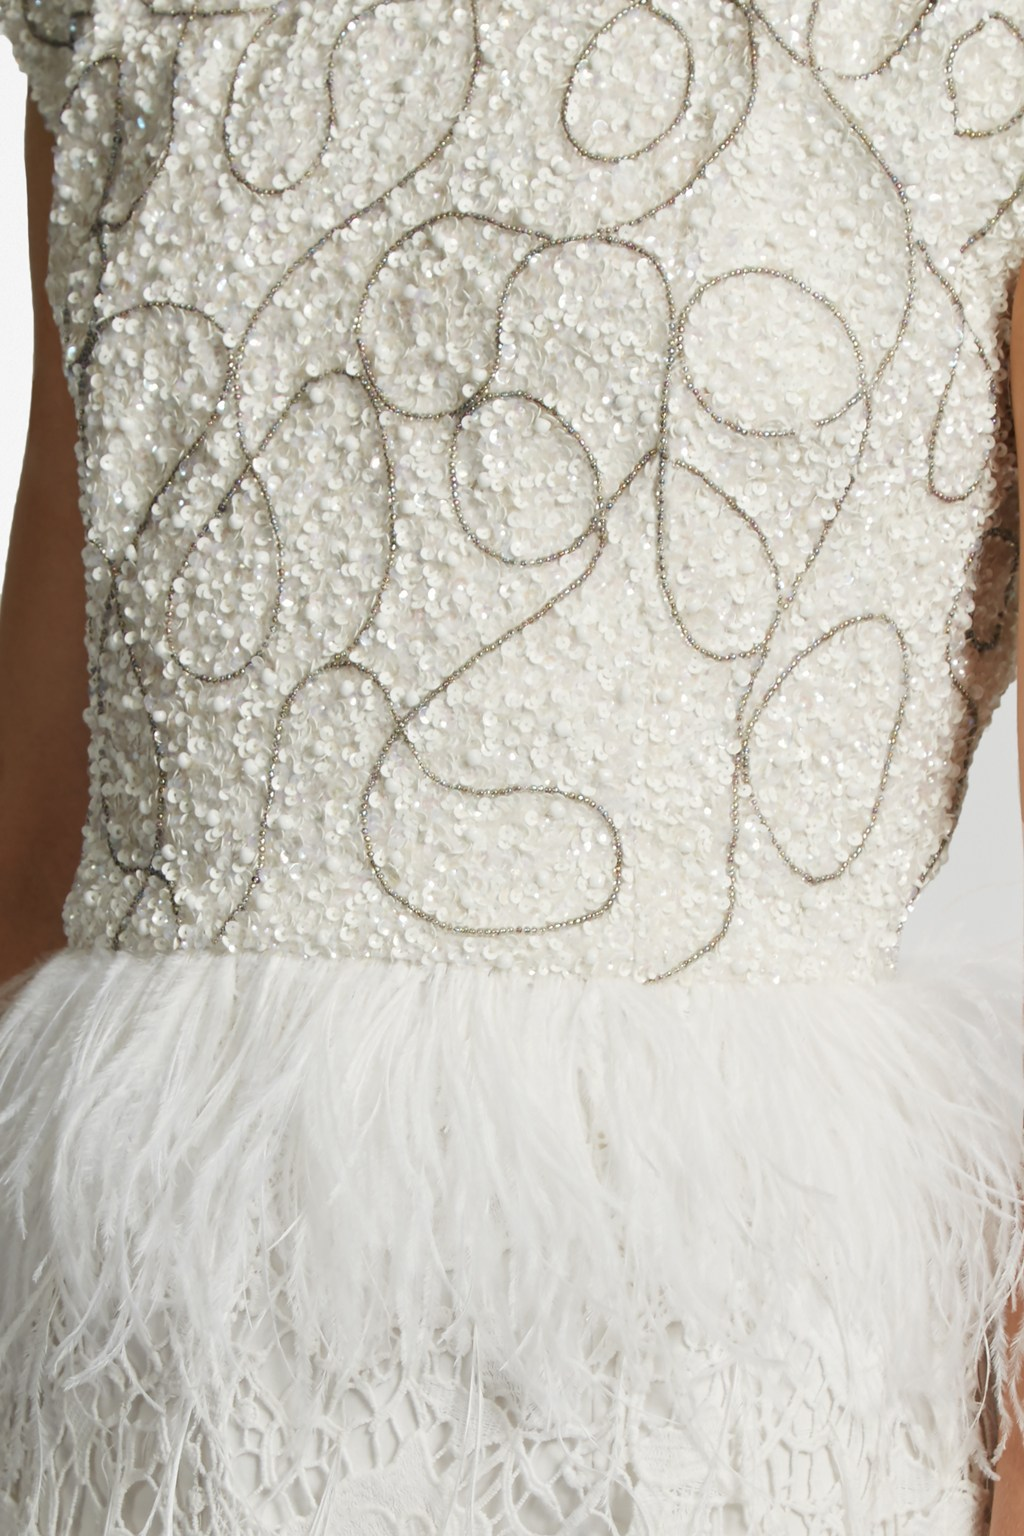 d8ad986a36e Snow Spell Feather Beaded Dress. loading images... loading images...  loading images.